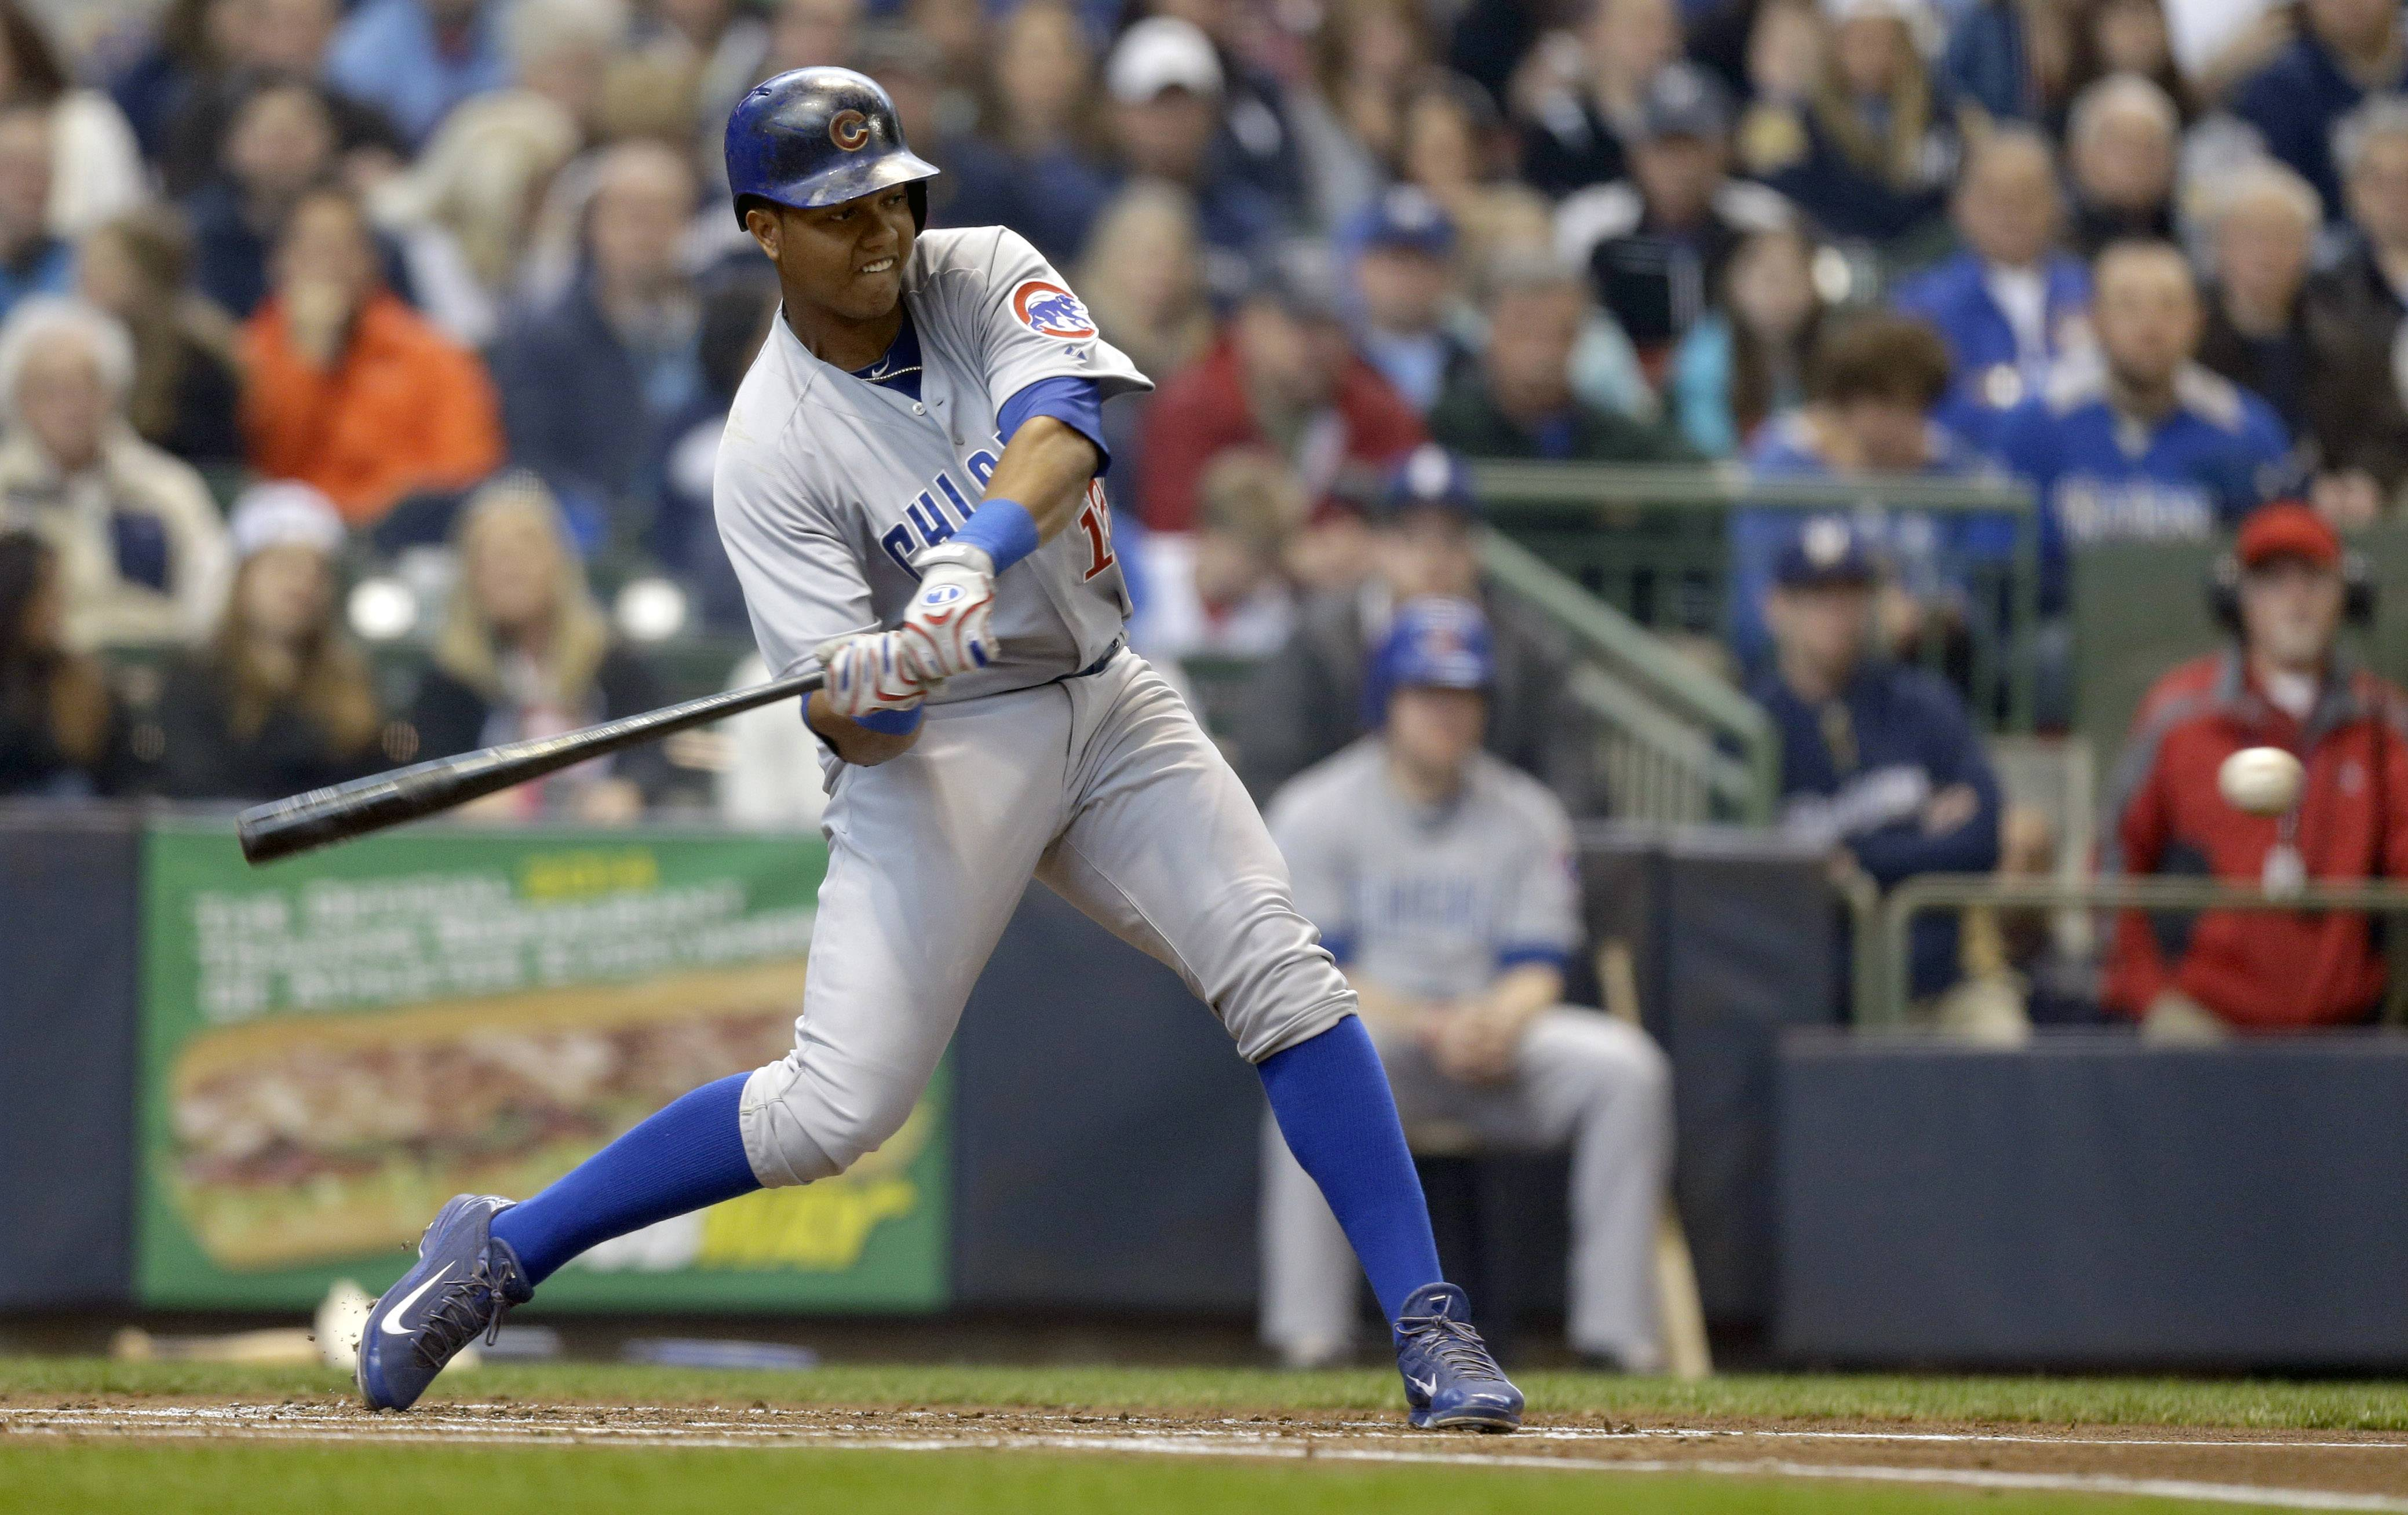 The Cubs' Starlin Castro hits 1 of his 2 home runs Sunday against the Brewers at Miller Park in Milwaukee.